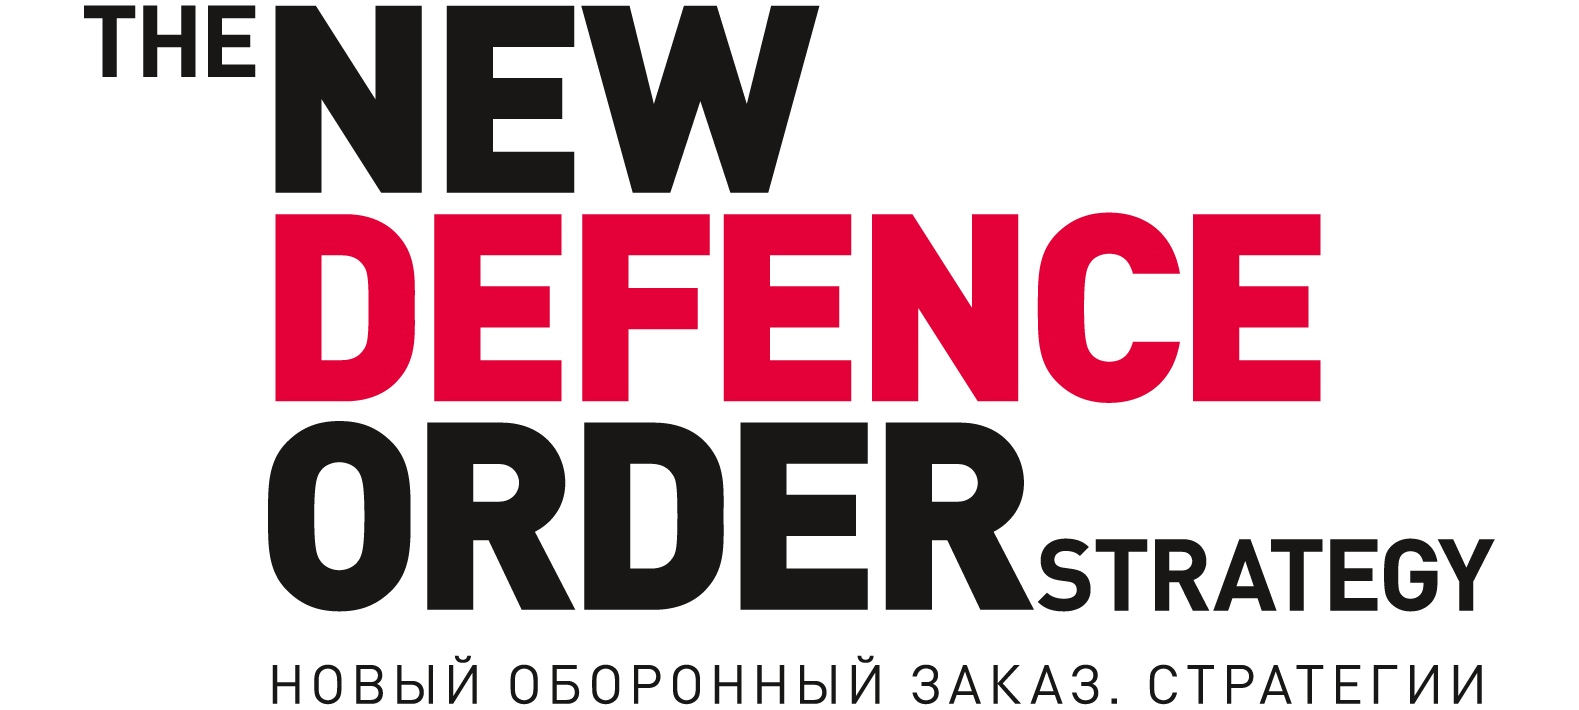 NEW DEFENCE ORDER. STRATEGY